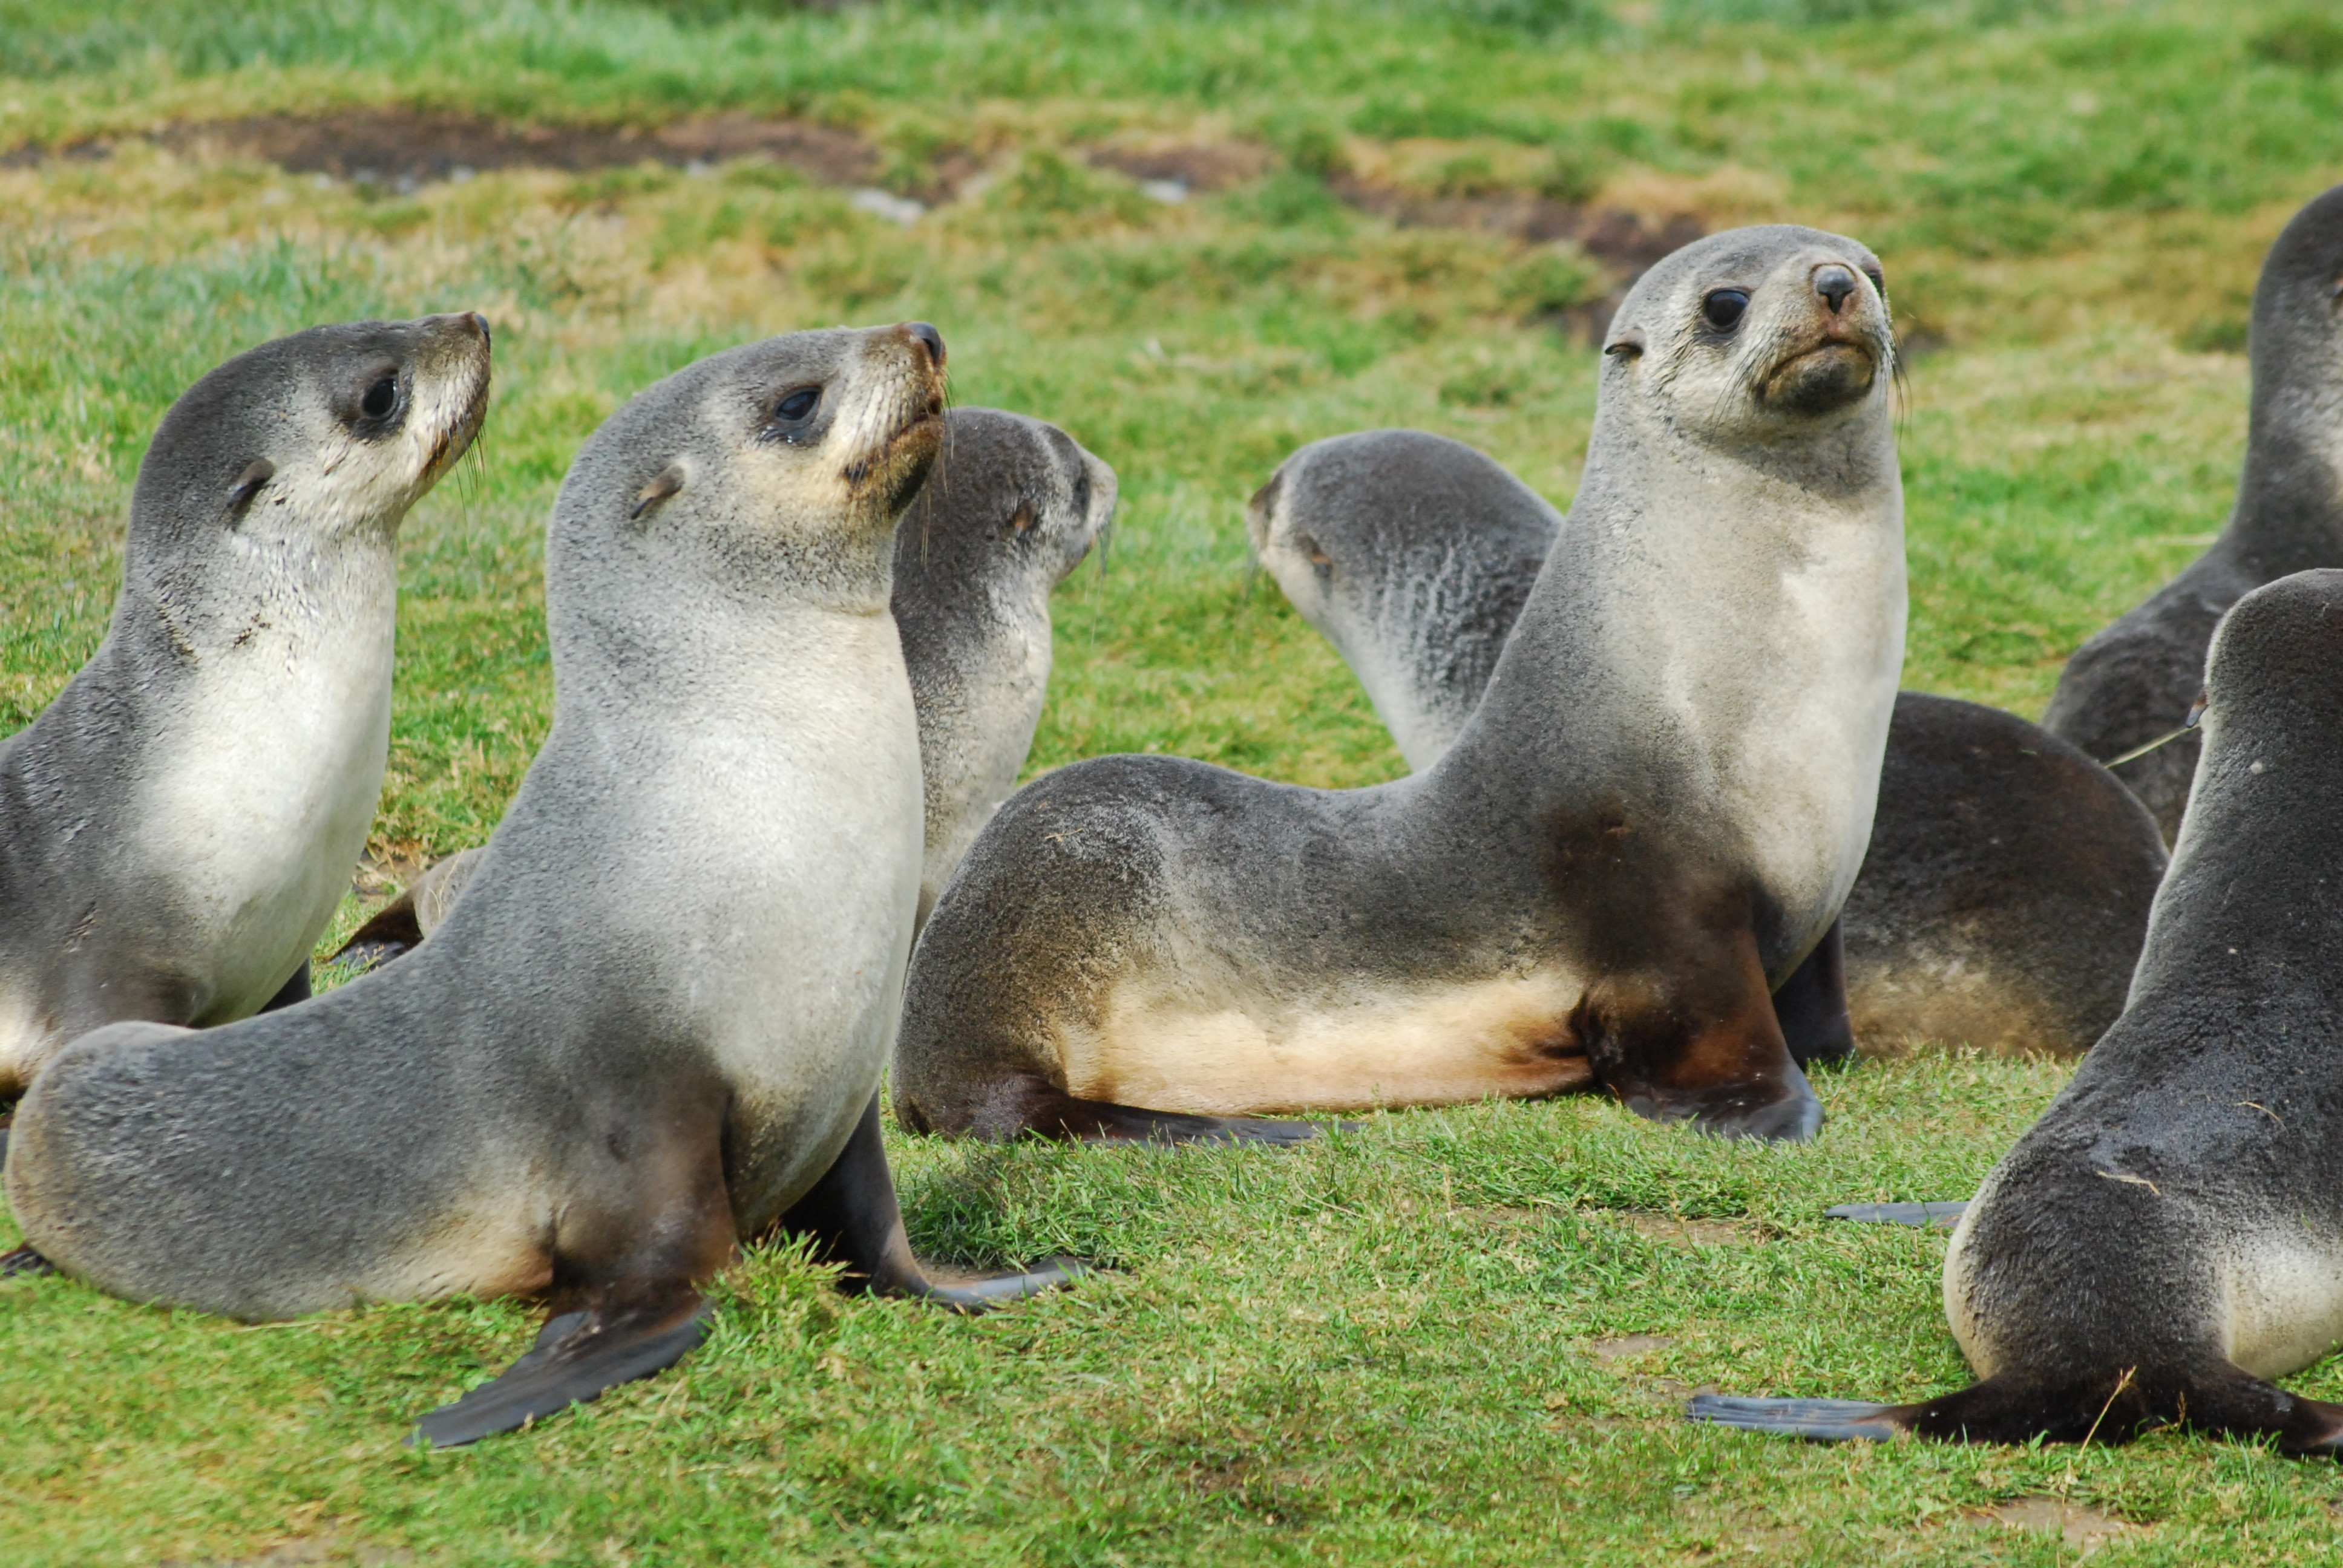 Antarctic fur seals. The species was nearly exterminated by hunting for the fur trade but recovery began in South Georgia in the 1930s. Now the islands host > 4 million, more than 95% of the global population.